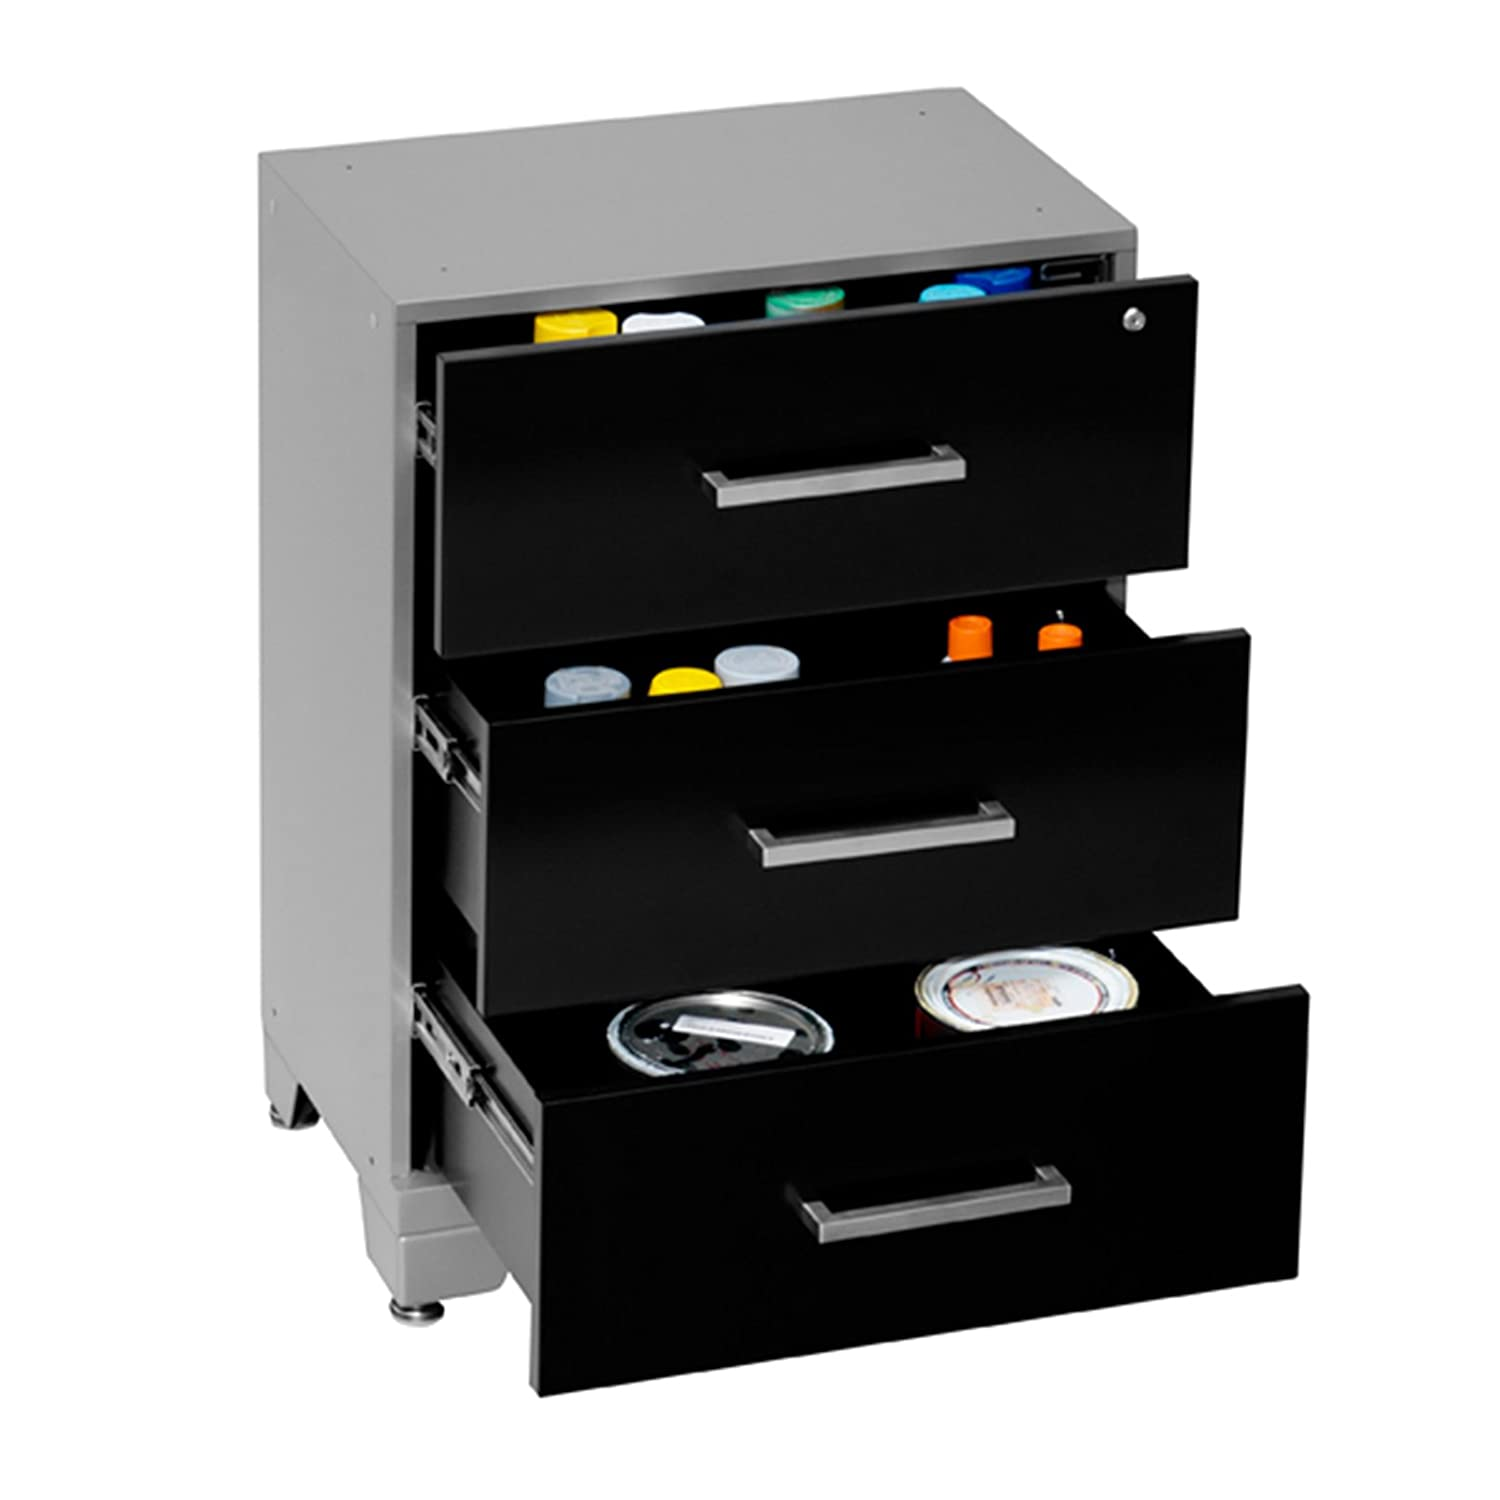 30 by 24 by 16 Black 30 by 24 by 16 NewAge Products Inc 36005 NewAge Products Performance Series Three Drawer Tool Cabinet